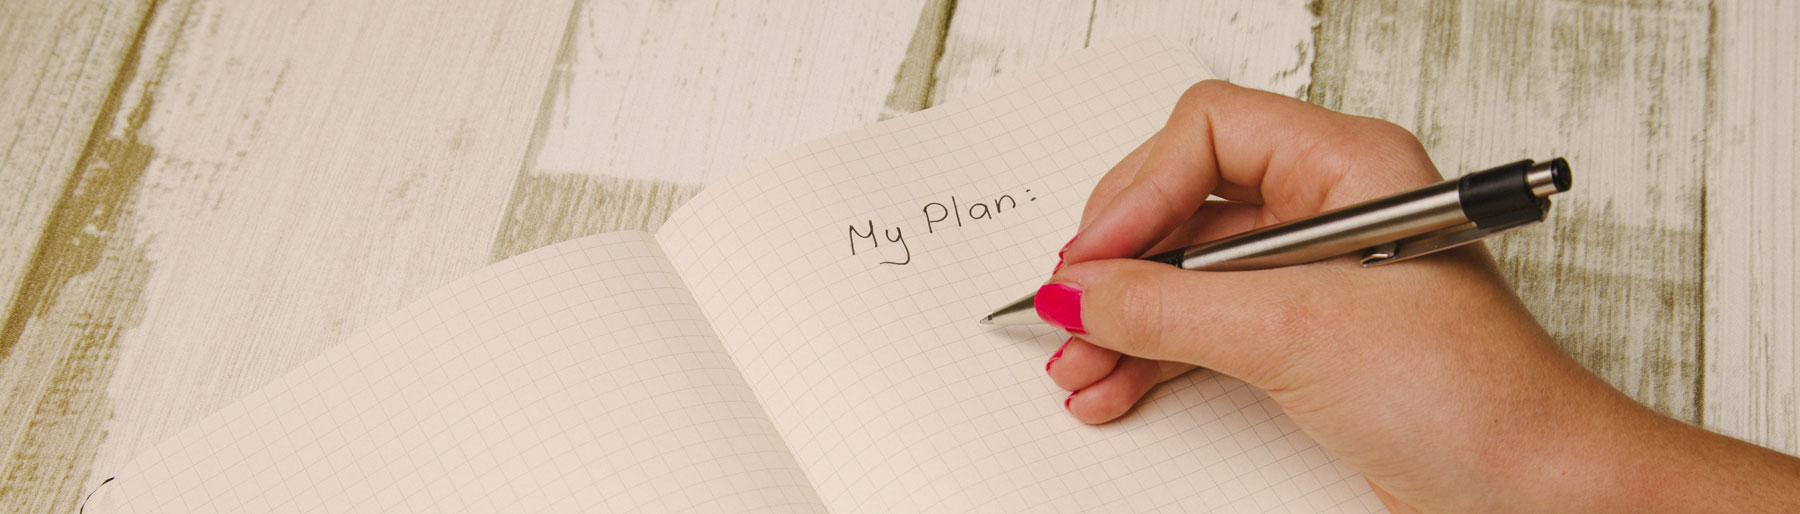 "woman writing in a note pad ""My Plan"""